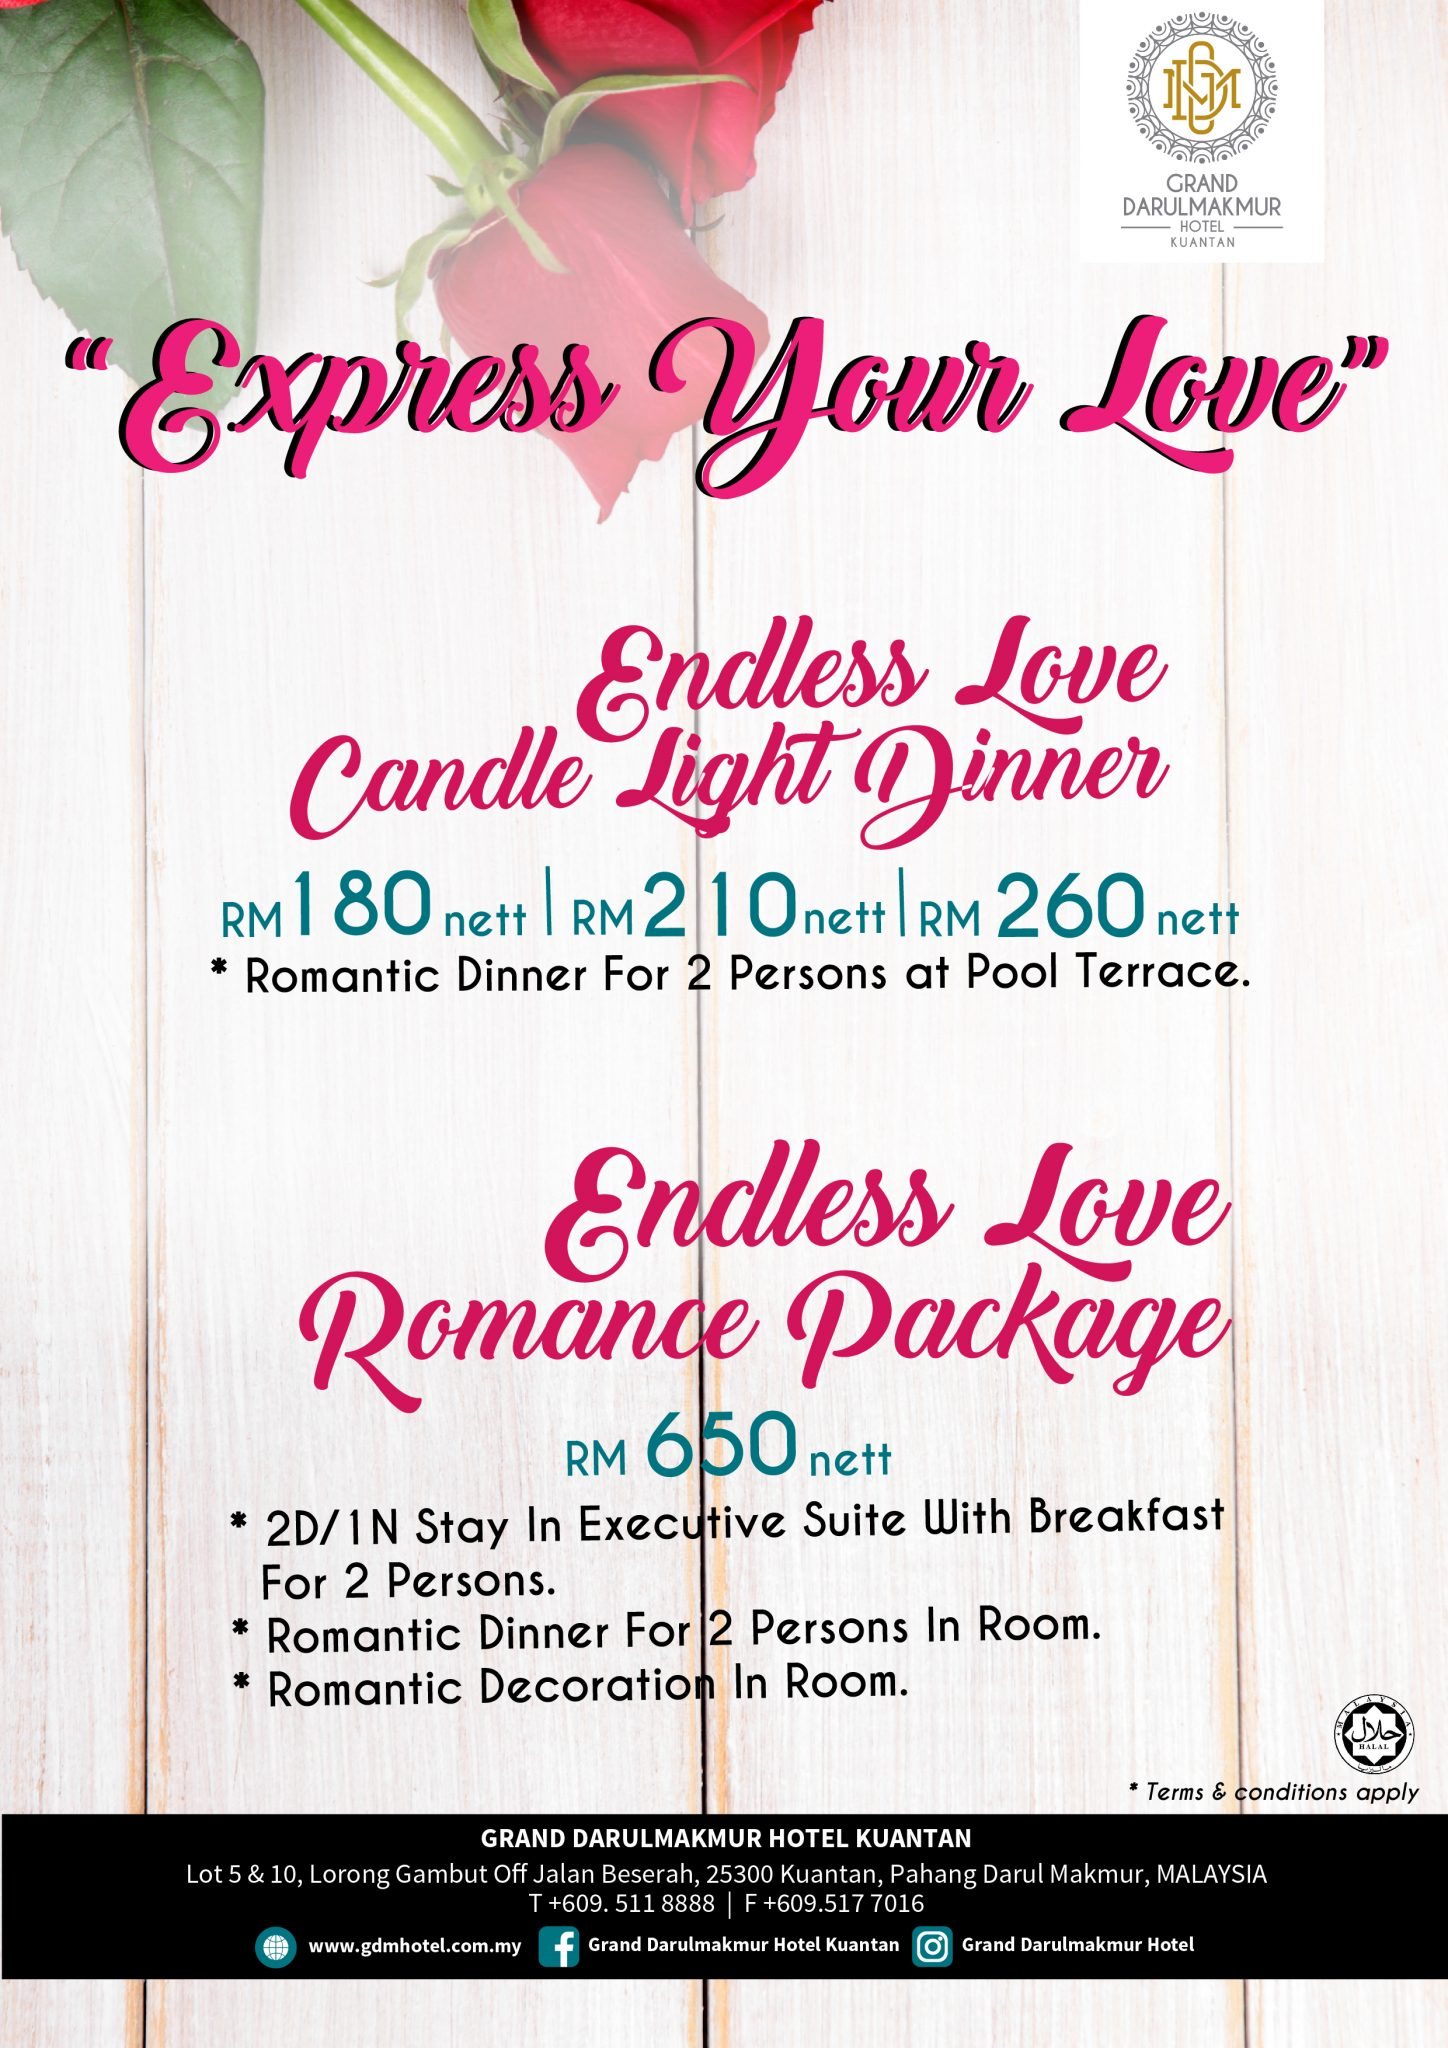 Candle Light Dinner & Romance Package